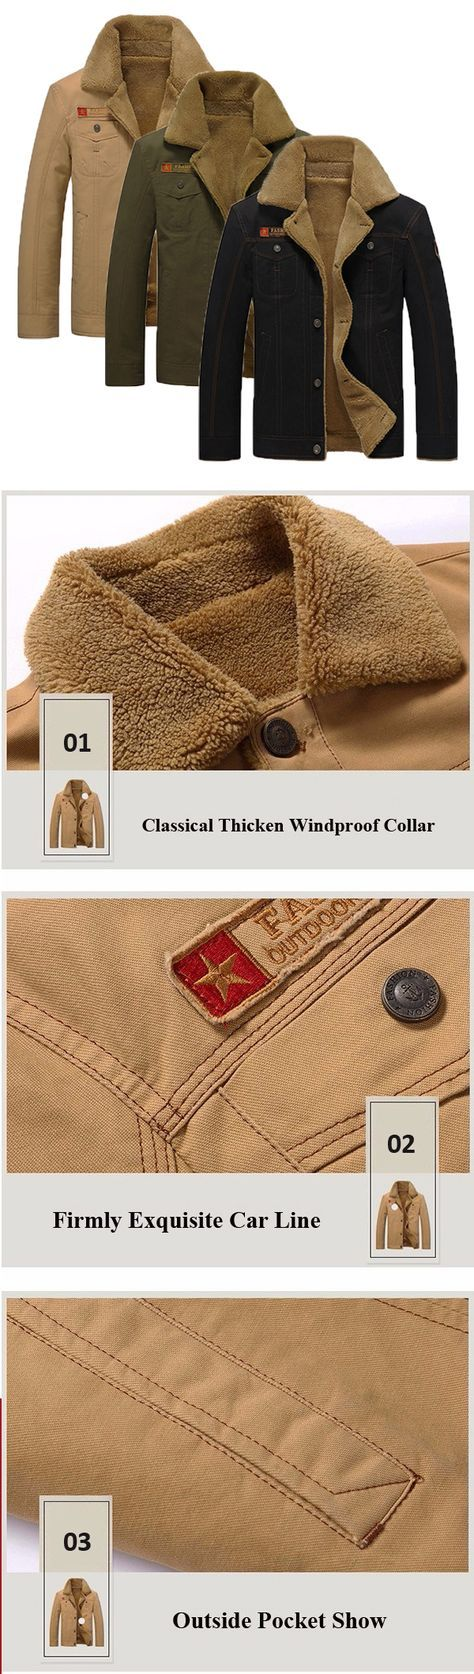 US$49.89 (48% OFF) Winter Outdoor Outfit: Thicken Warm Washed Turn-Down Collar Jacket for Men